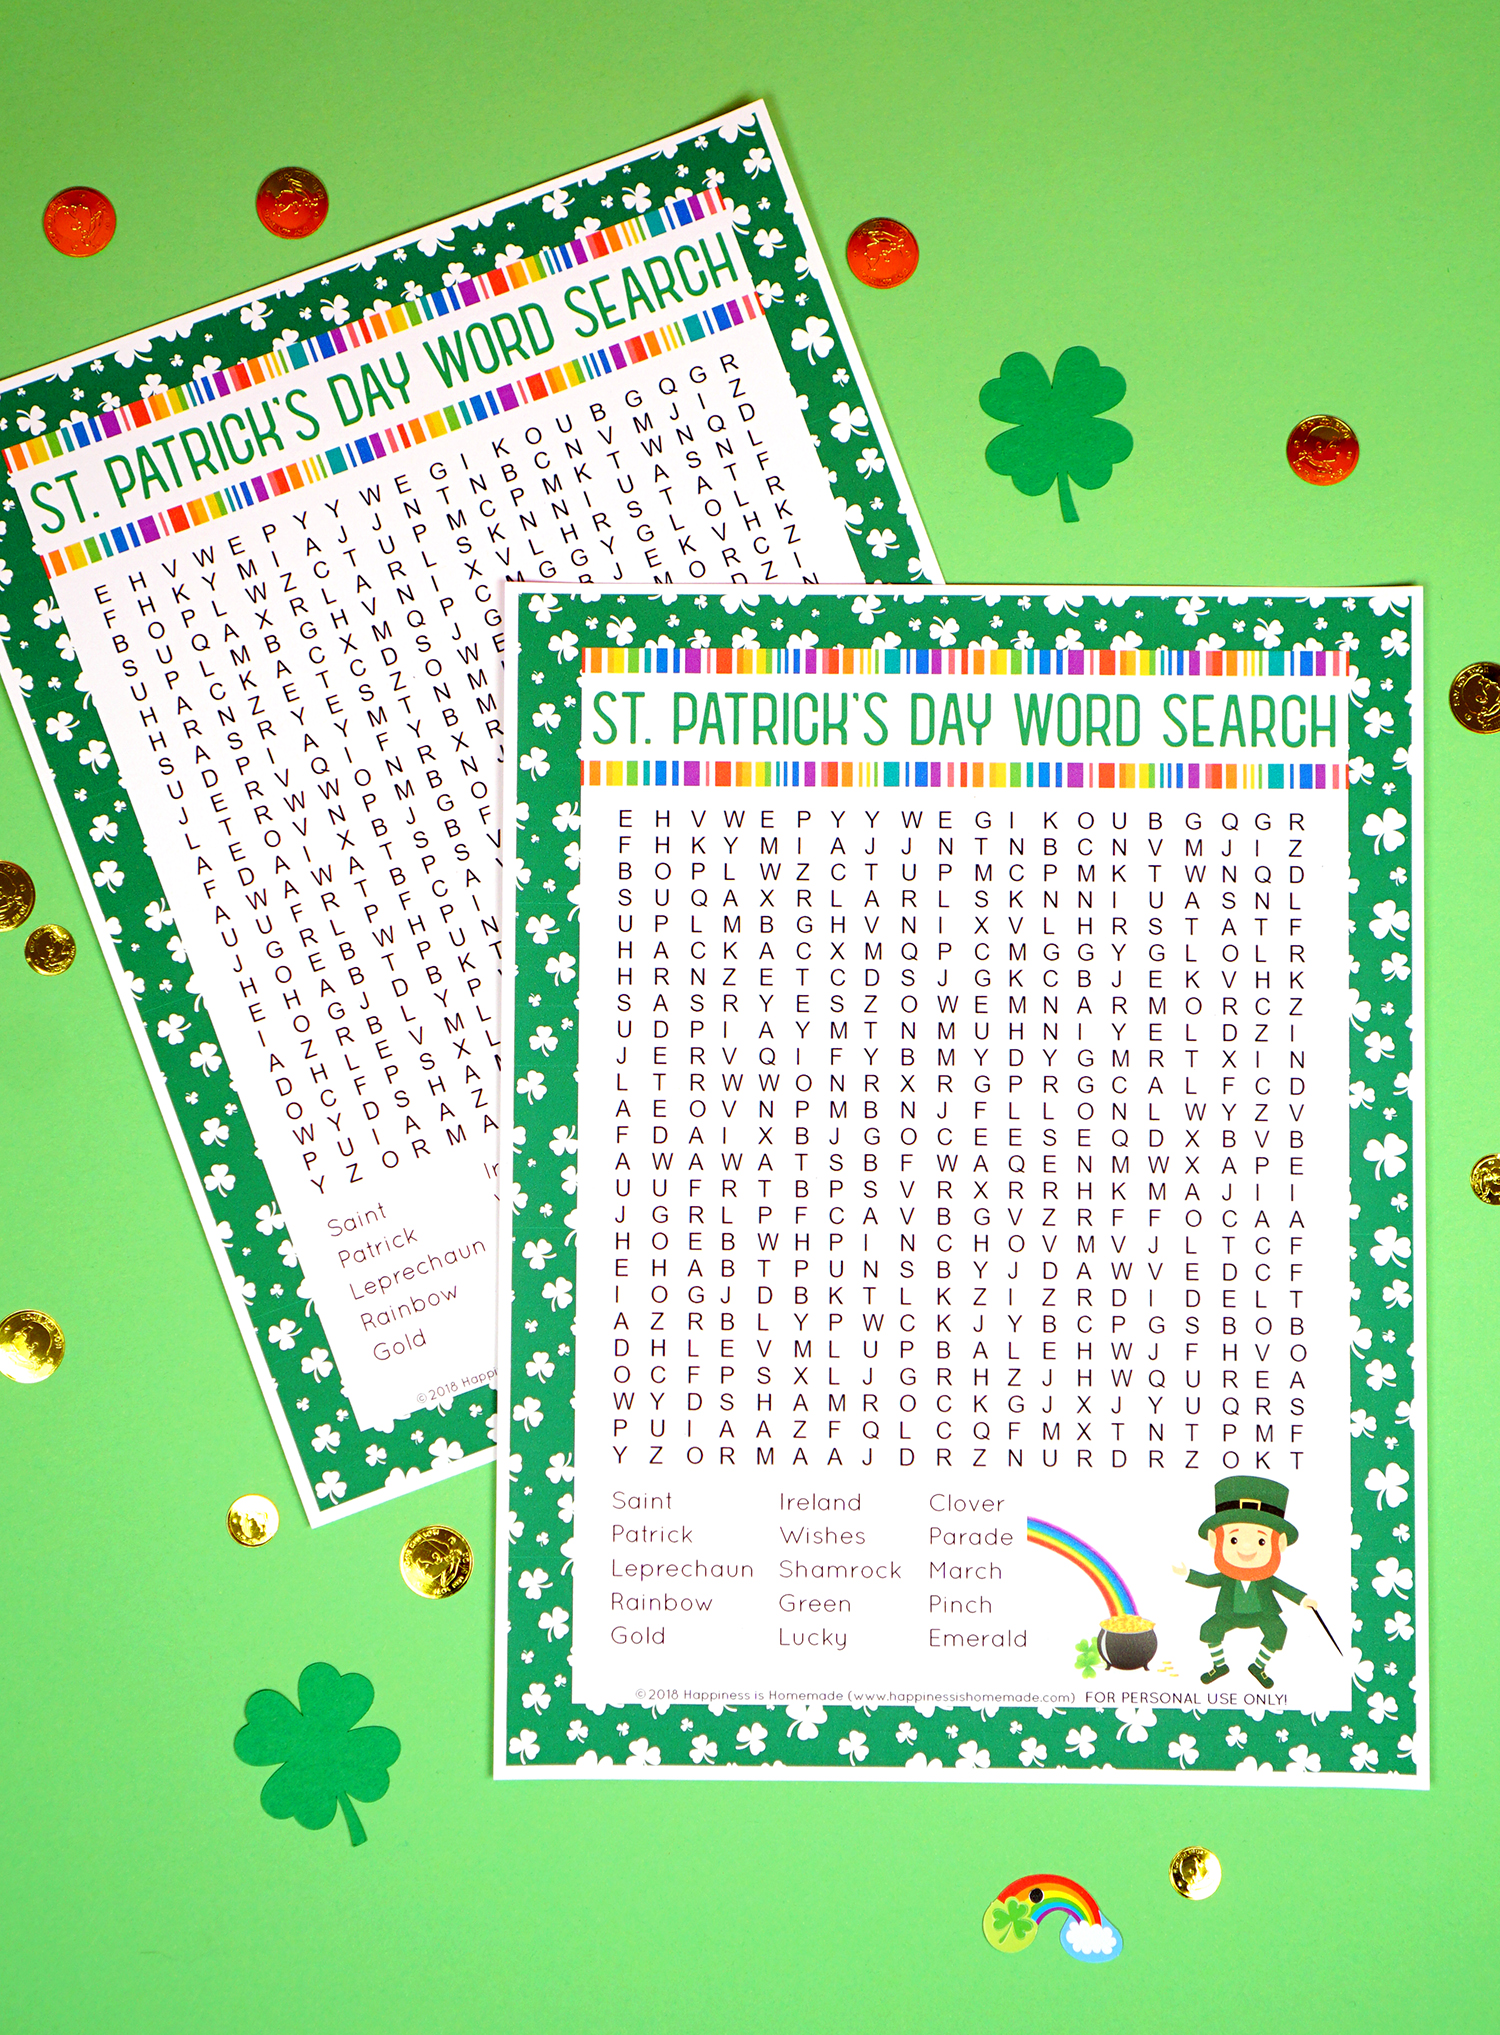 picture regarding St Patrick Day Trivia Questions and Answers Printable called St. Patricks Working day Phrase Glance Printable - Joy is Handmade